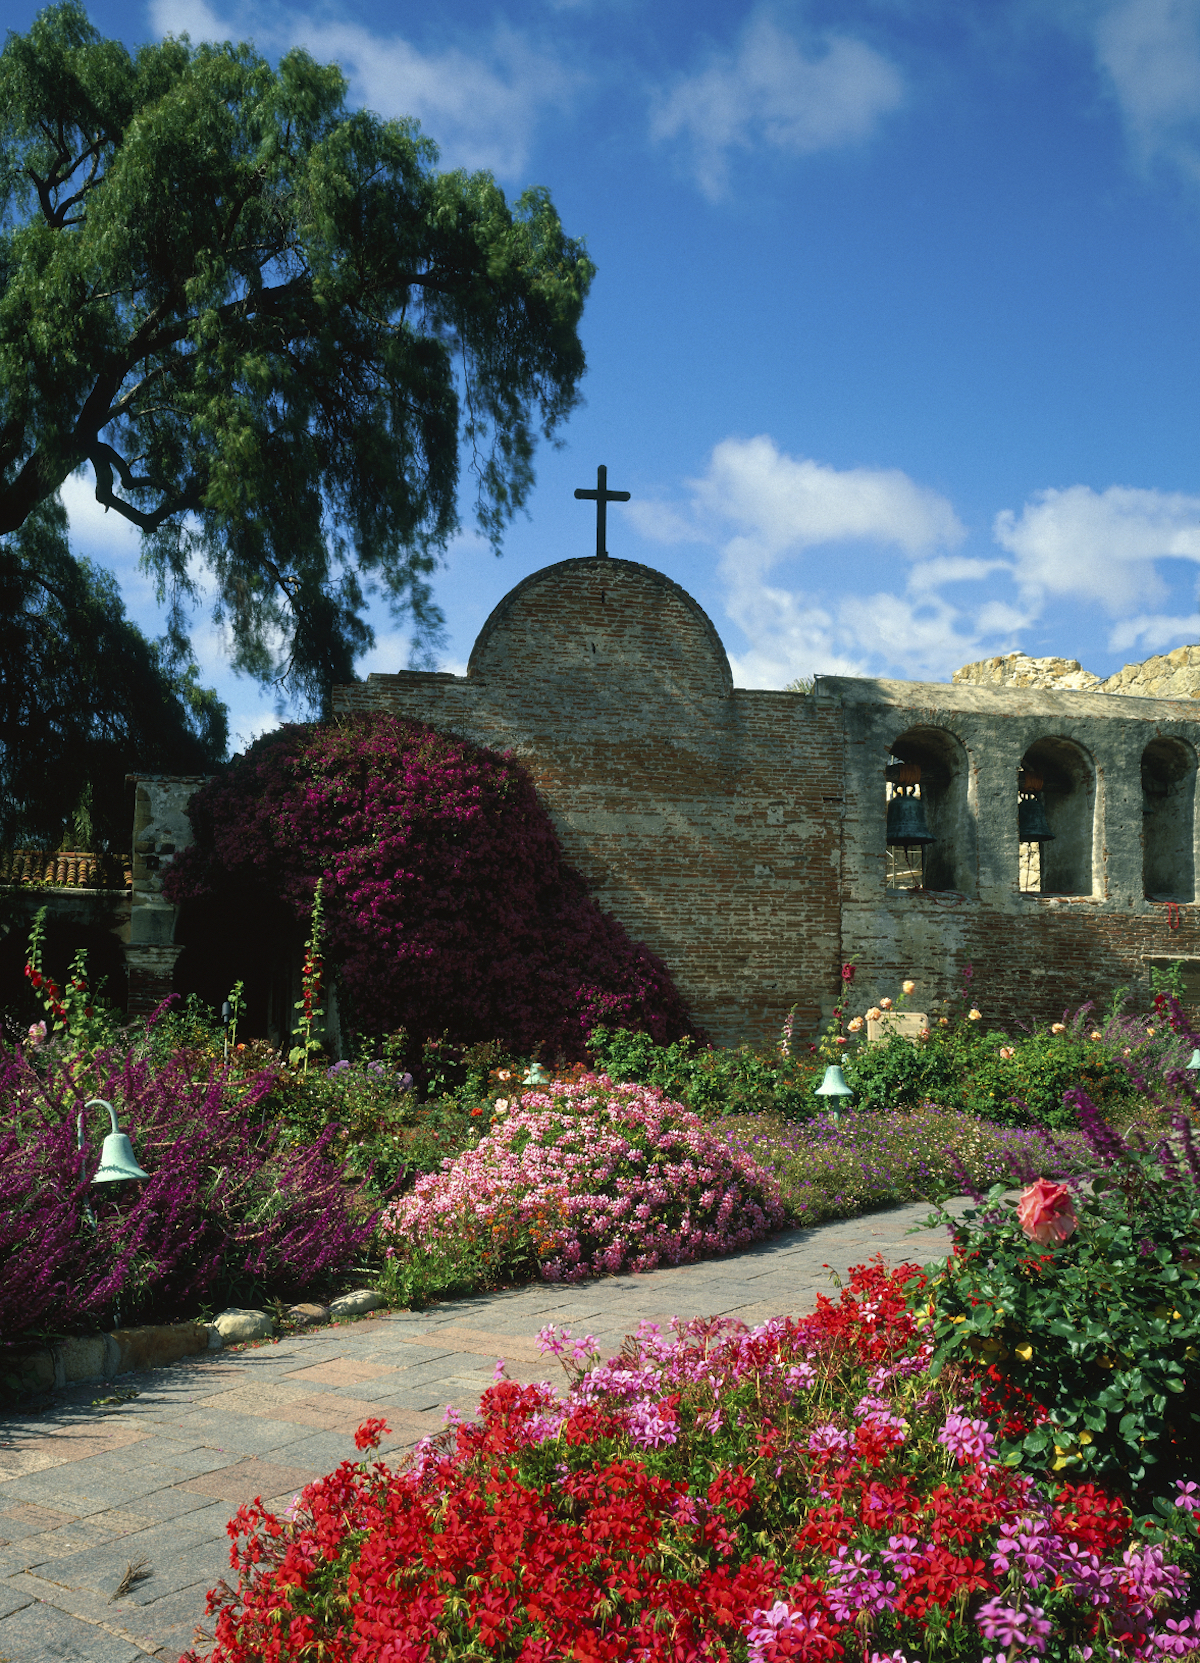 The gardens in bloom at San Juan Capistrano landmark